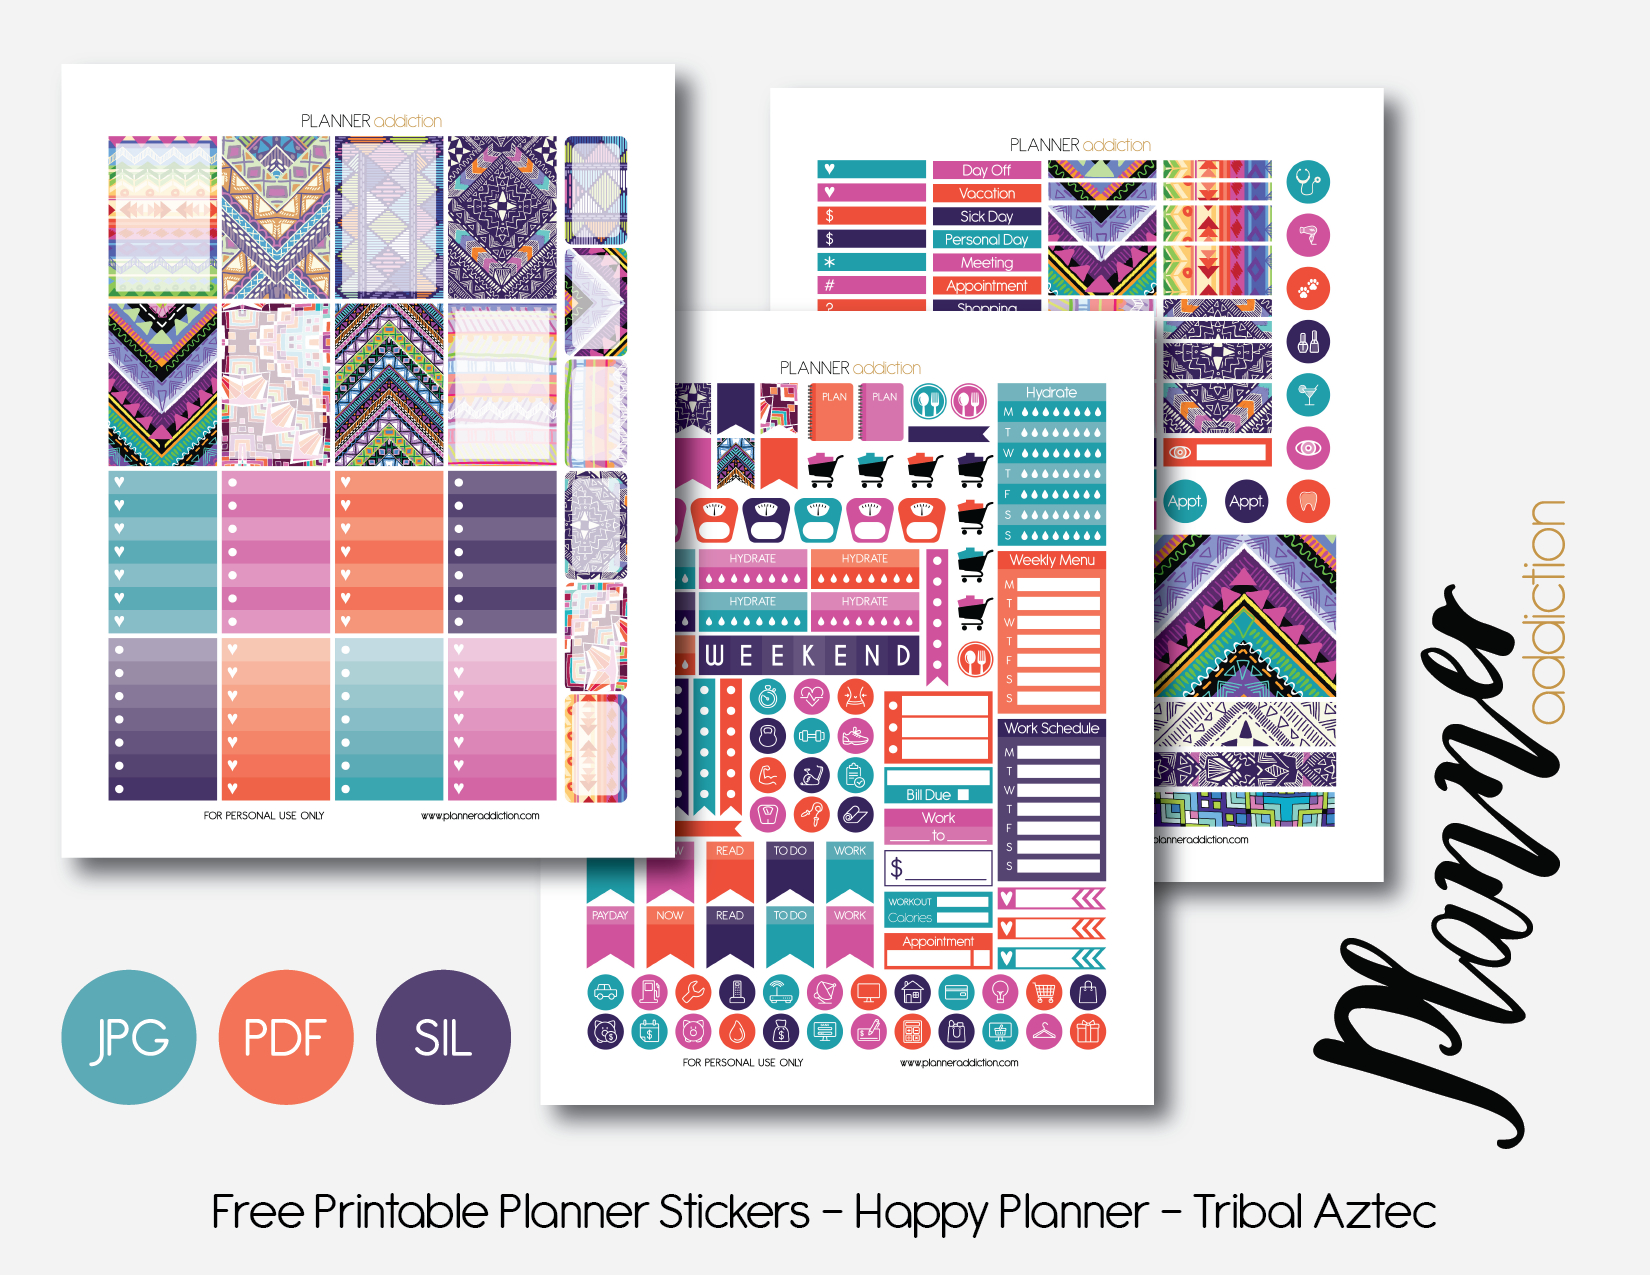 Free Printable Planner Stickers – Planner Addiction - Free Printable Happy Planner Stickers